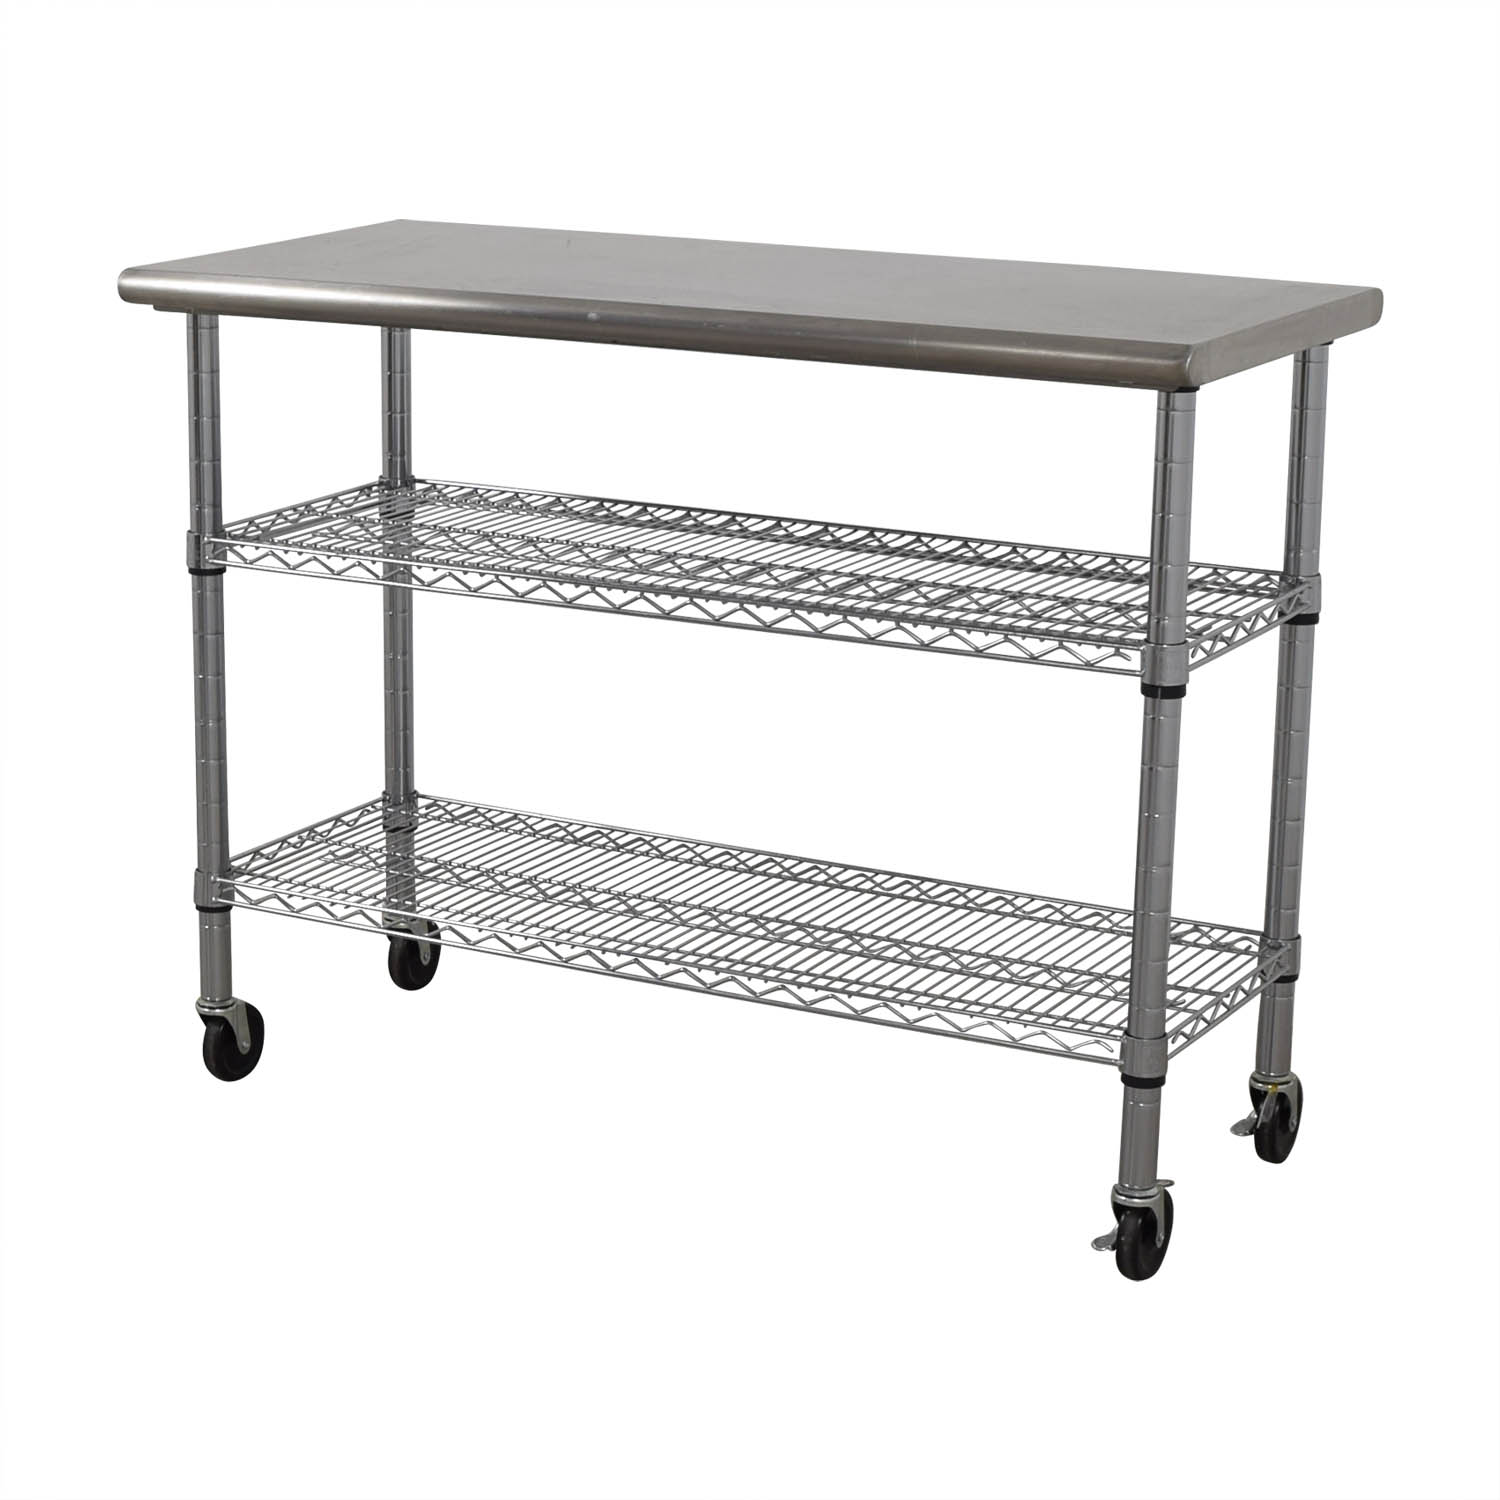 buy Home Depot Stainless Steel Utility Cart on Wheels Home Depot Utility Tables